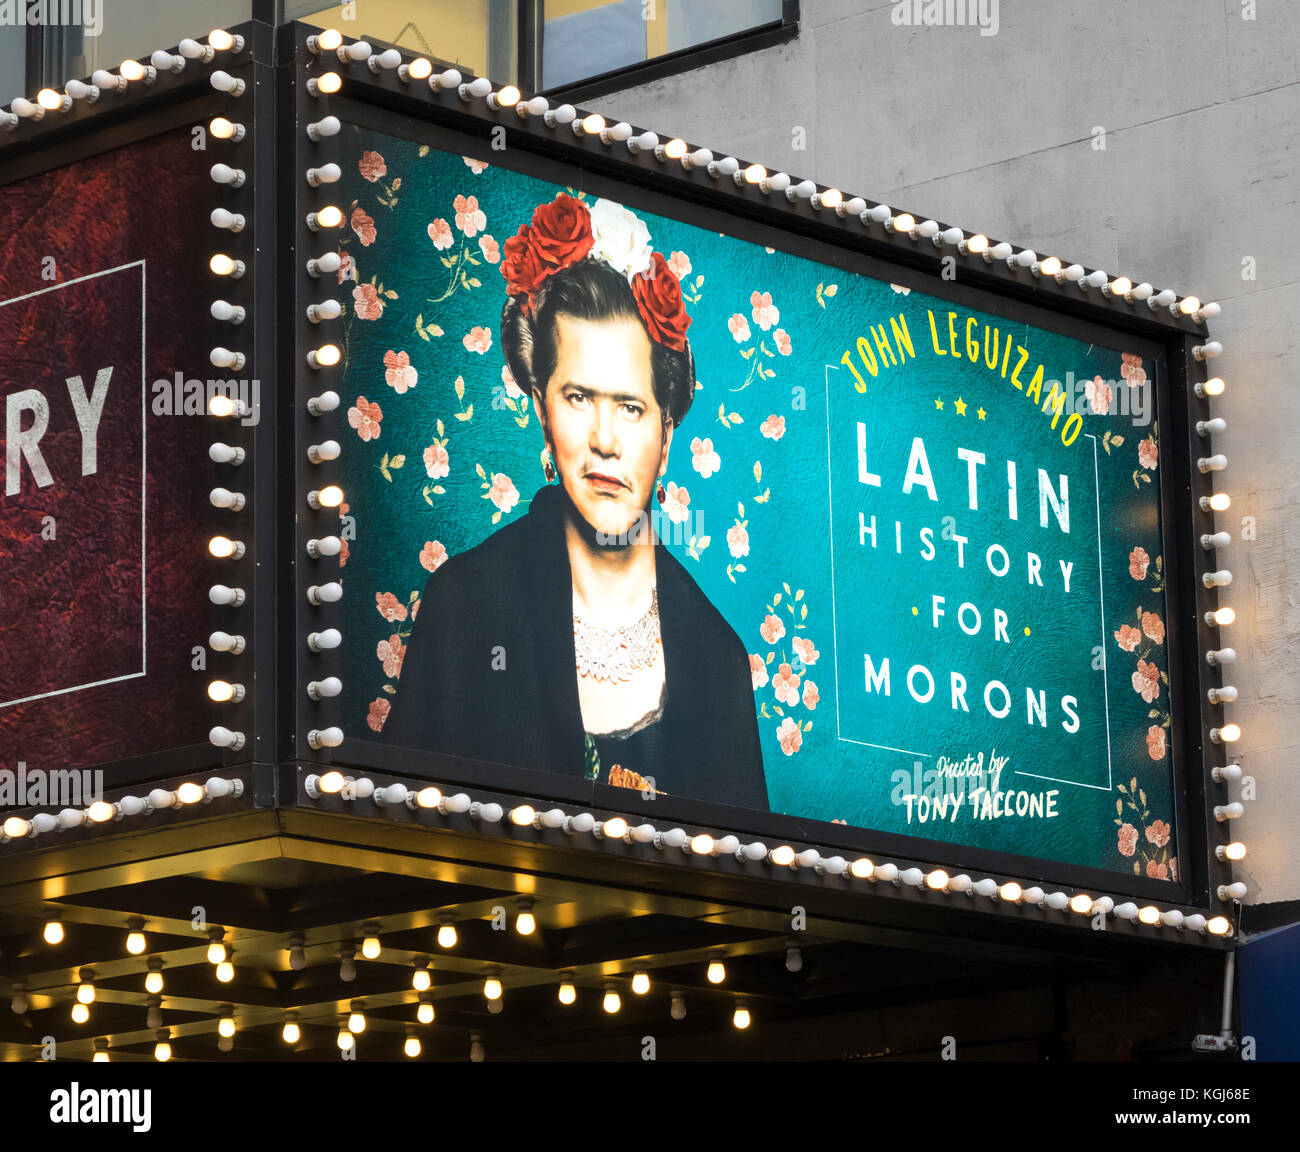 Latin History for Morons with John Leguizamo, a Roundabout Theatre Company production at Studio 54 in New York City - Stock Image